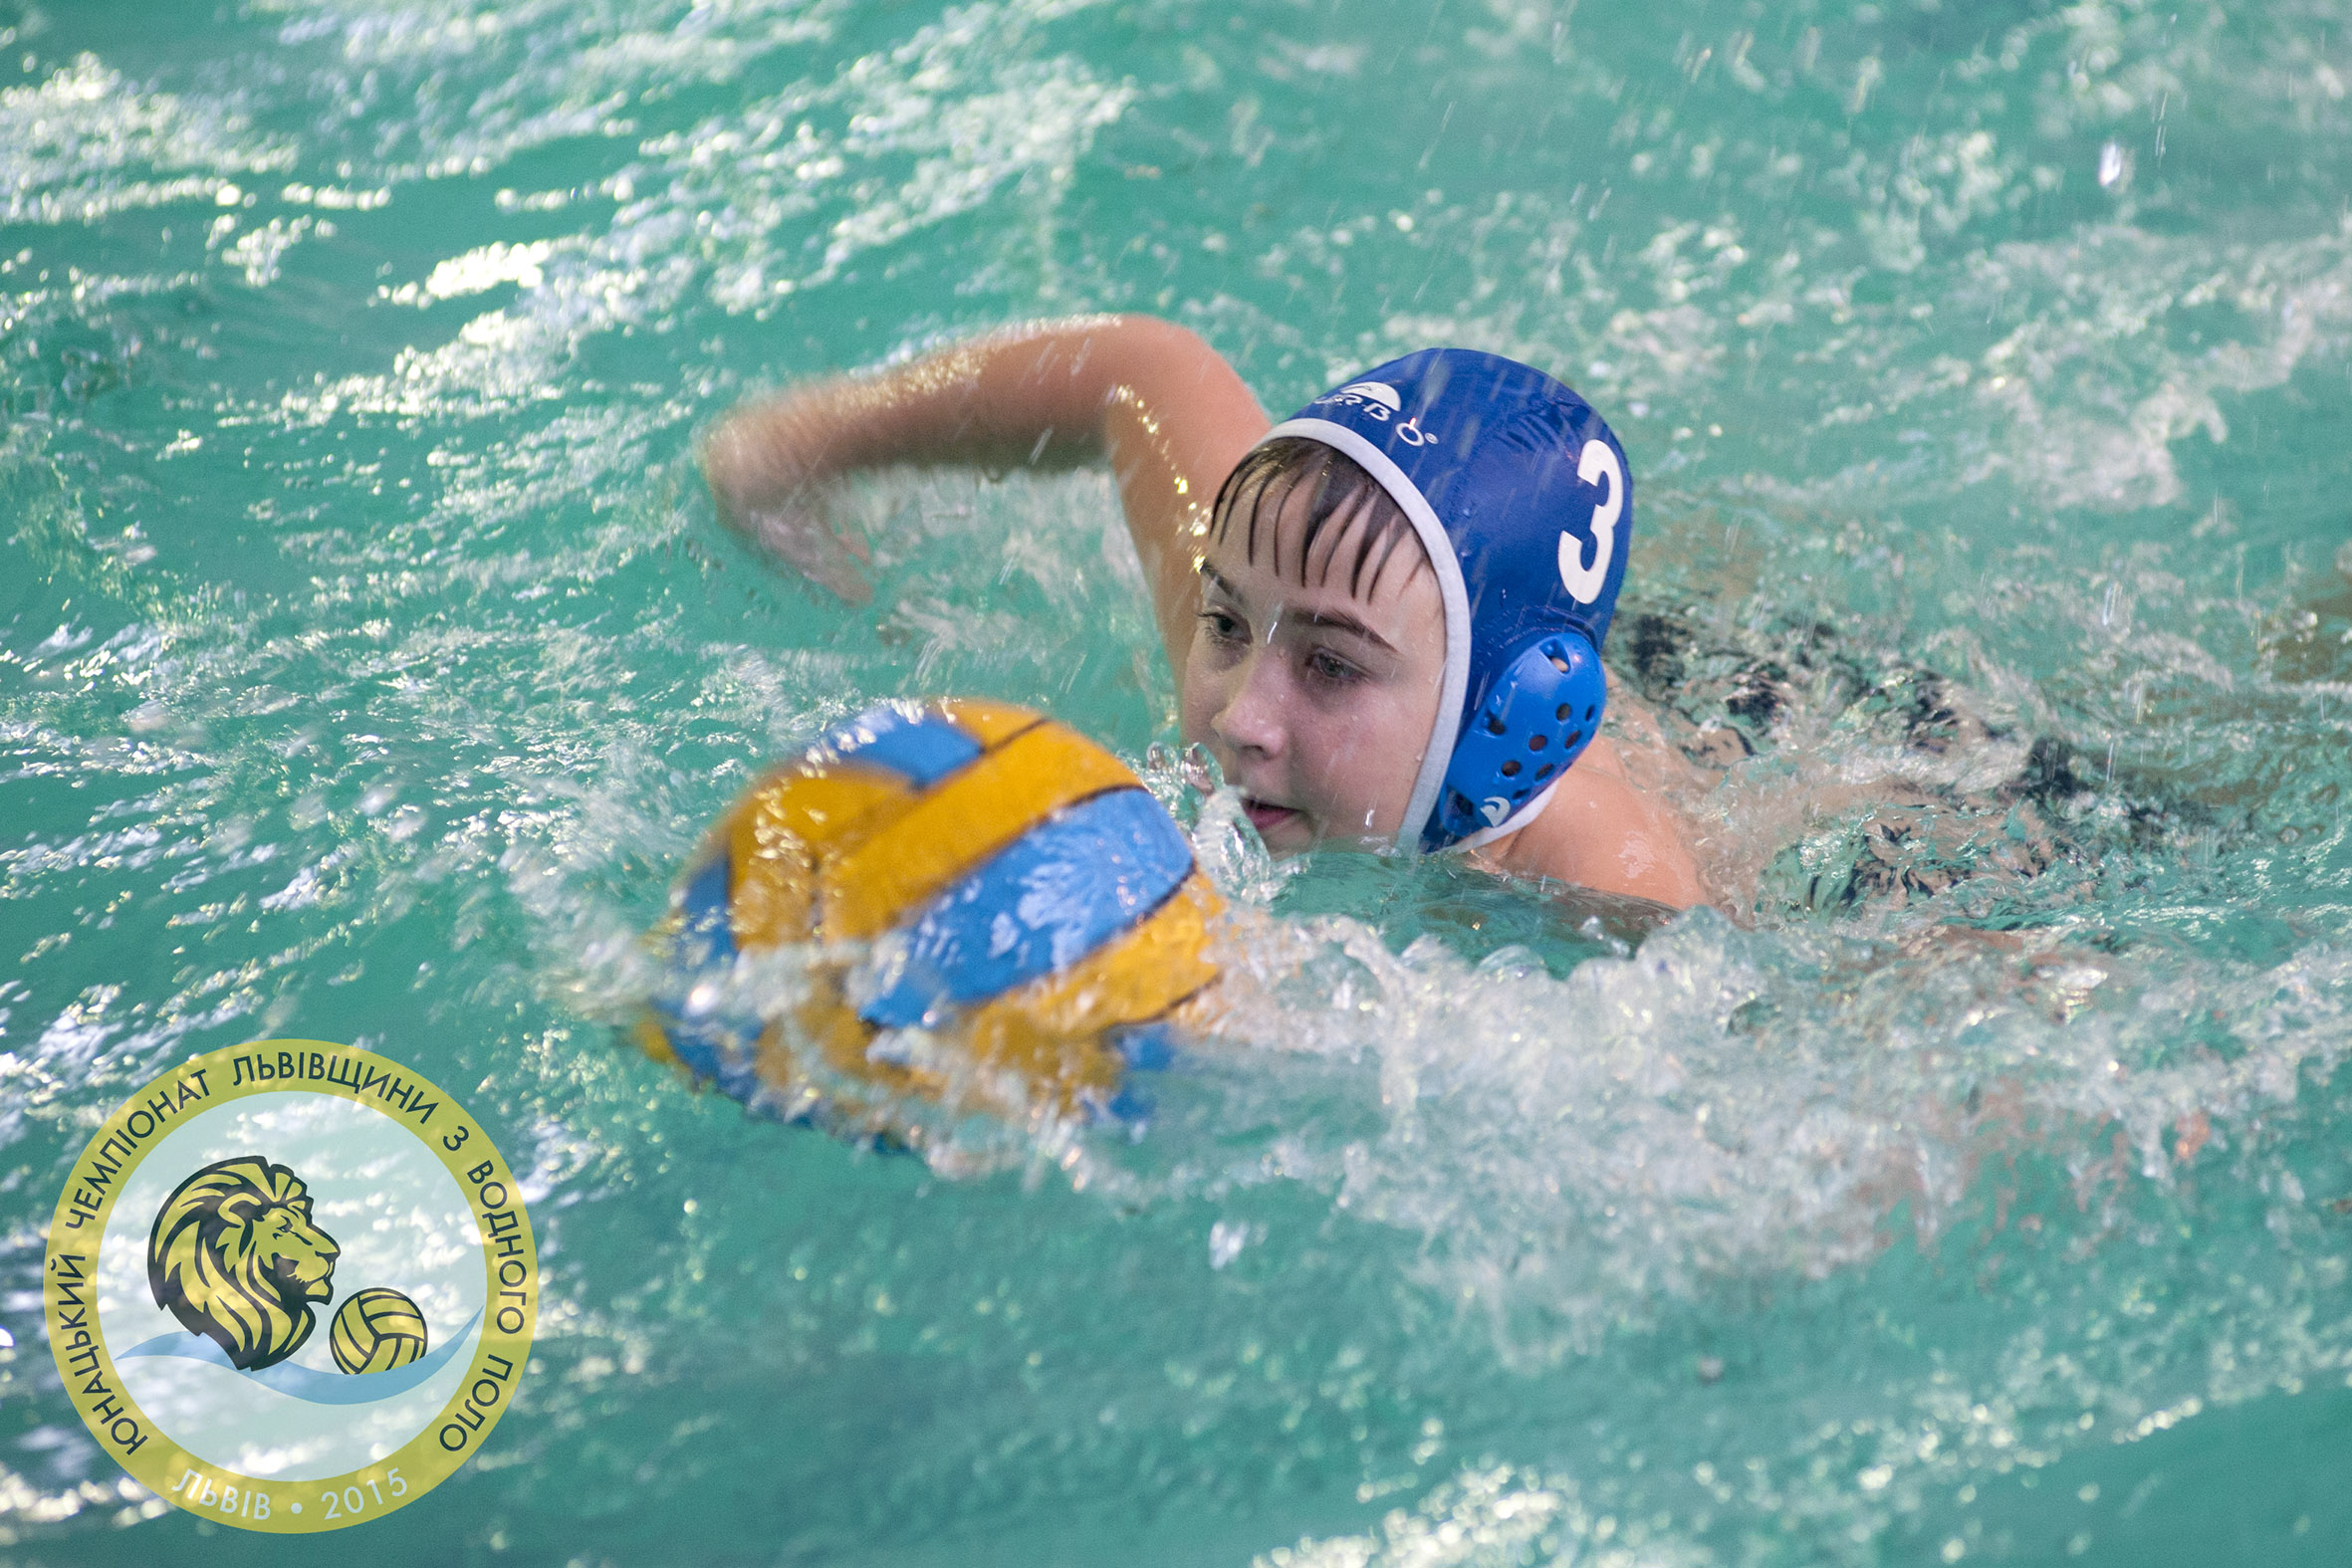 www.waterpolo.org.ua_21.12.2014.jpg